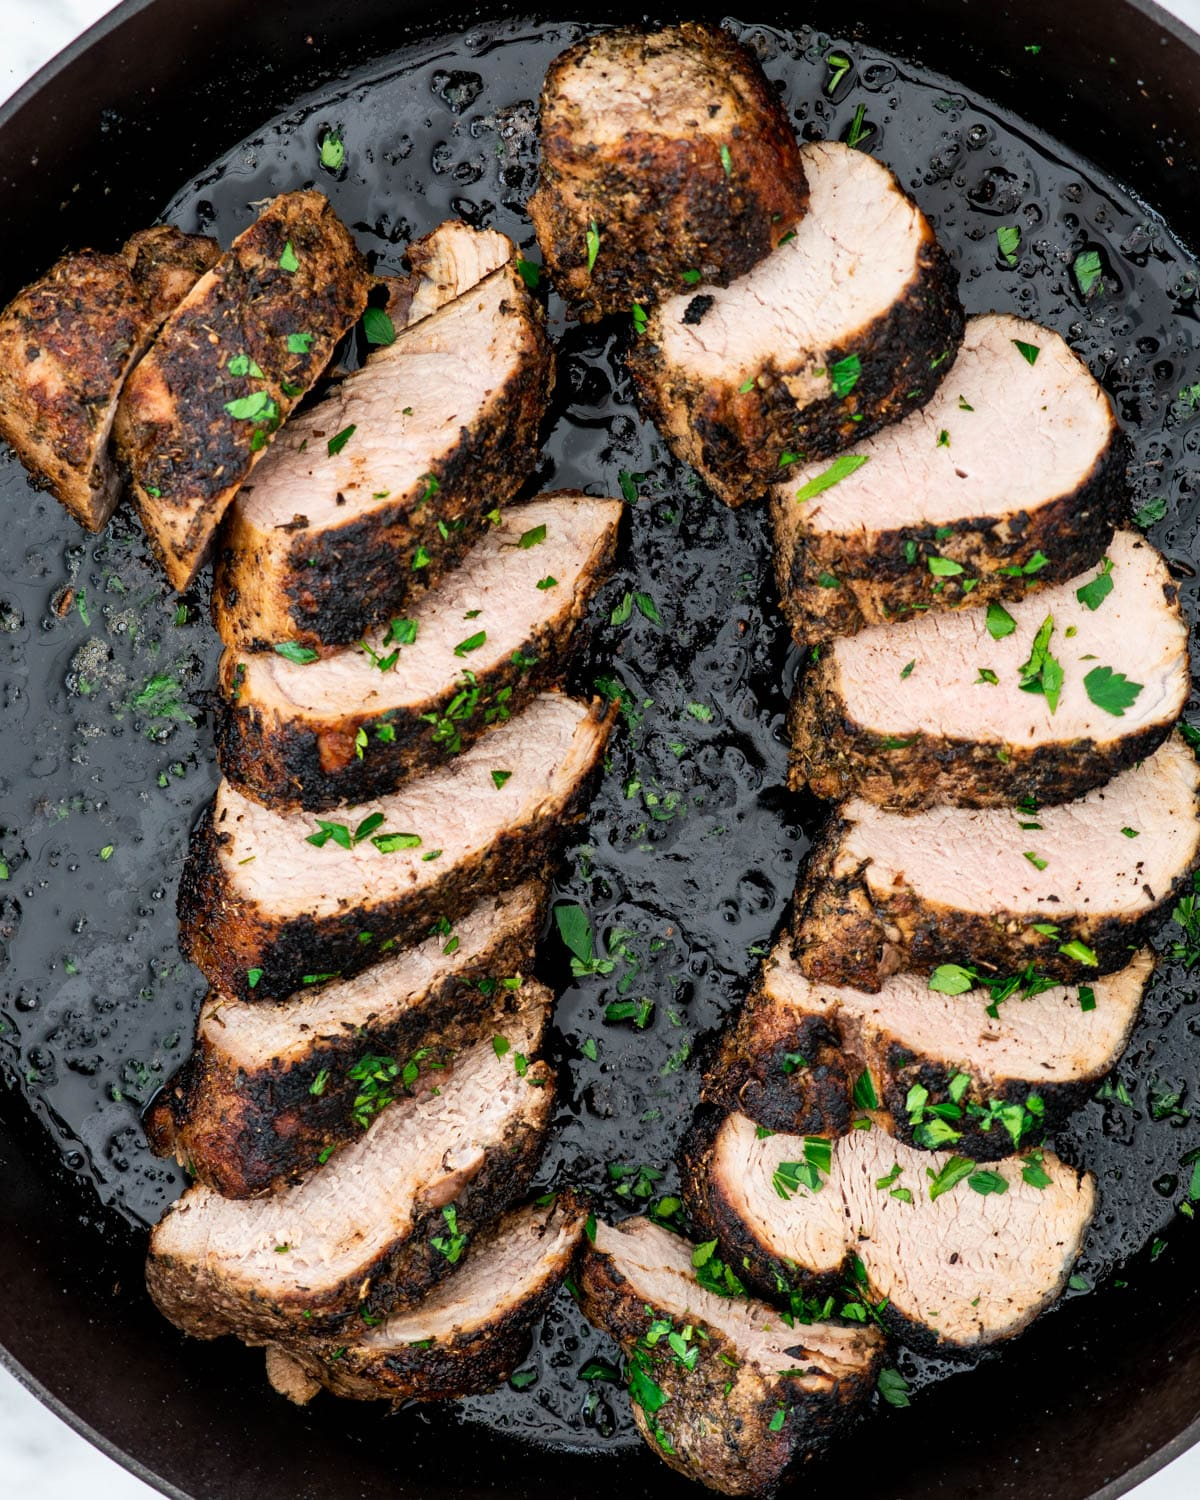 Pork Tenderloin 1.75-2.25lbs